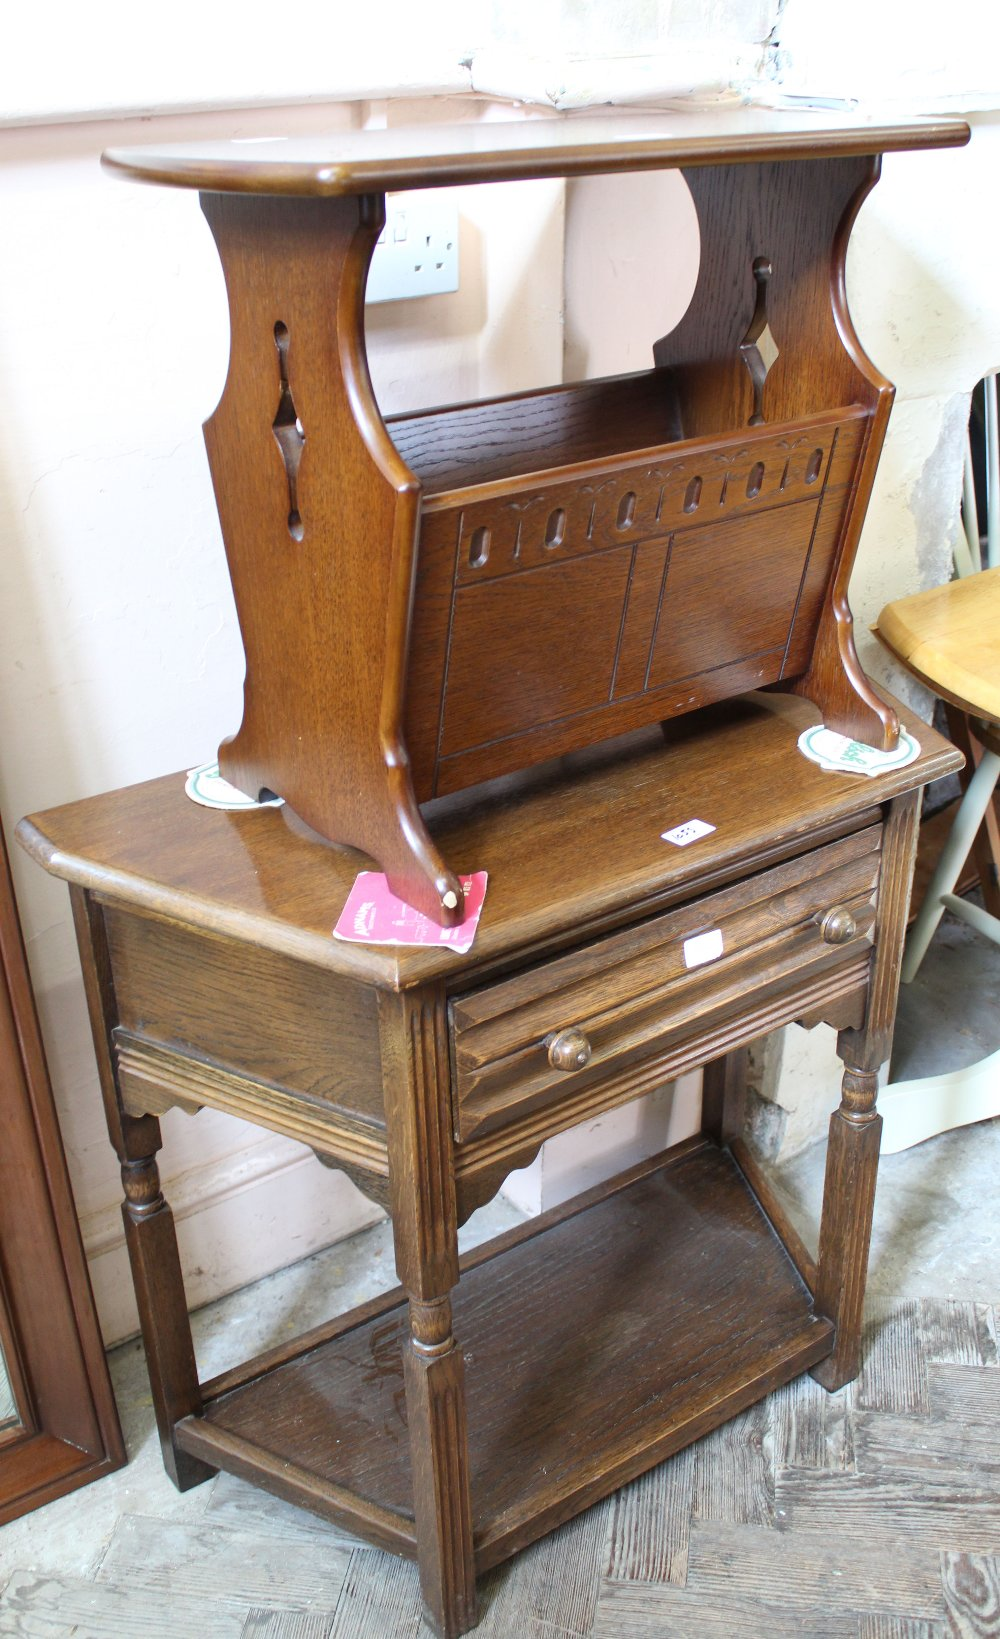 Lot 1055 - An Old Charm magazine rack and single drawer side table